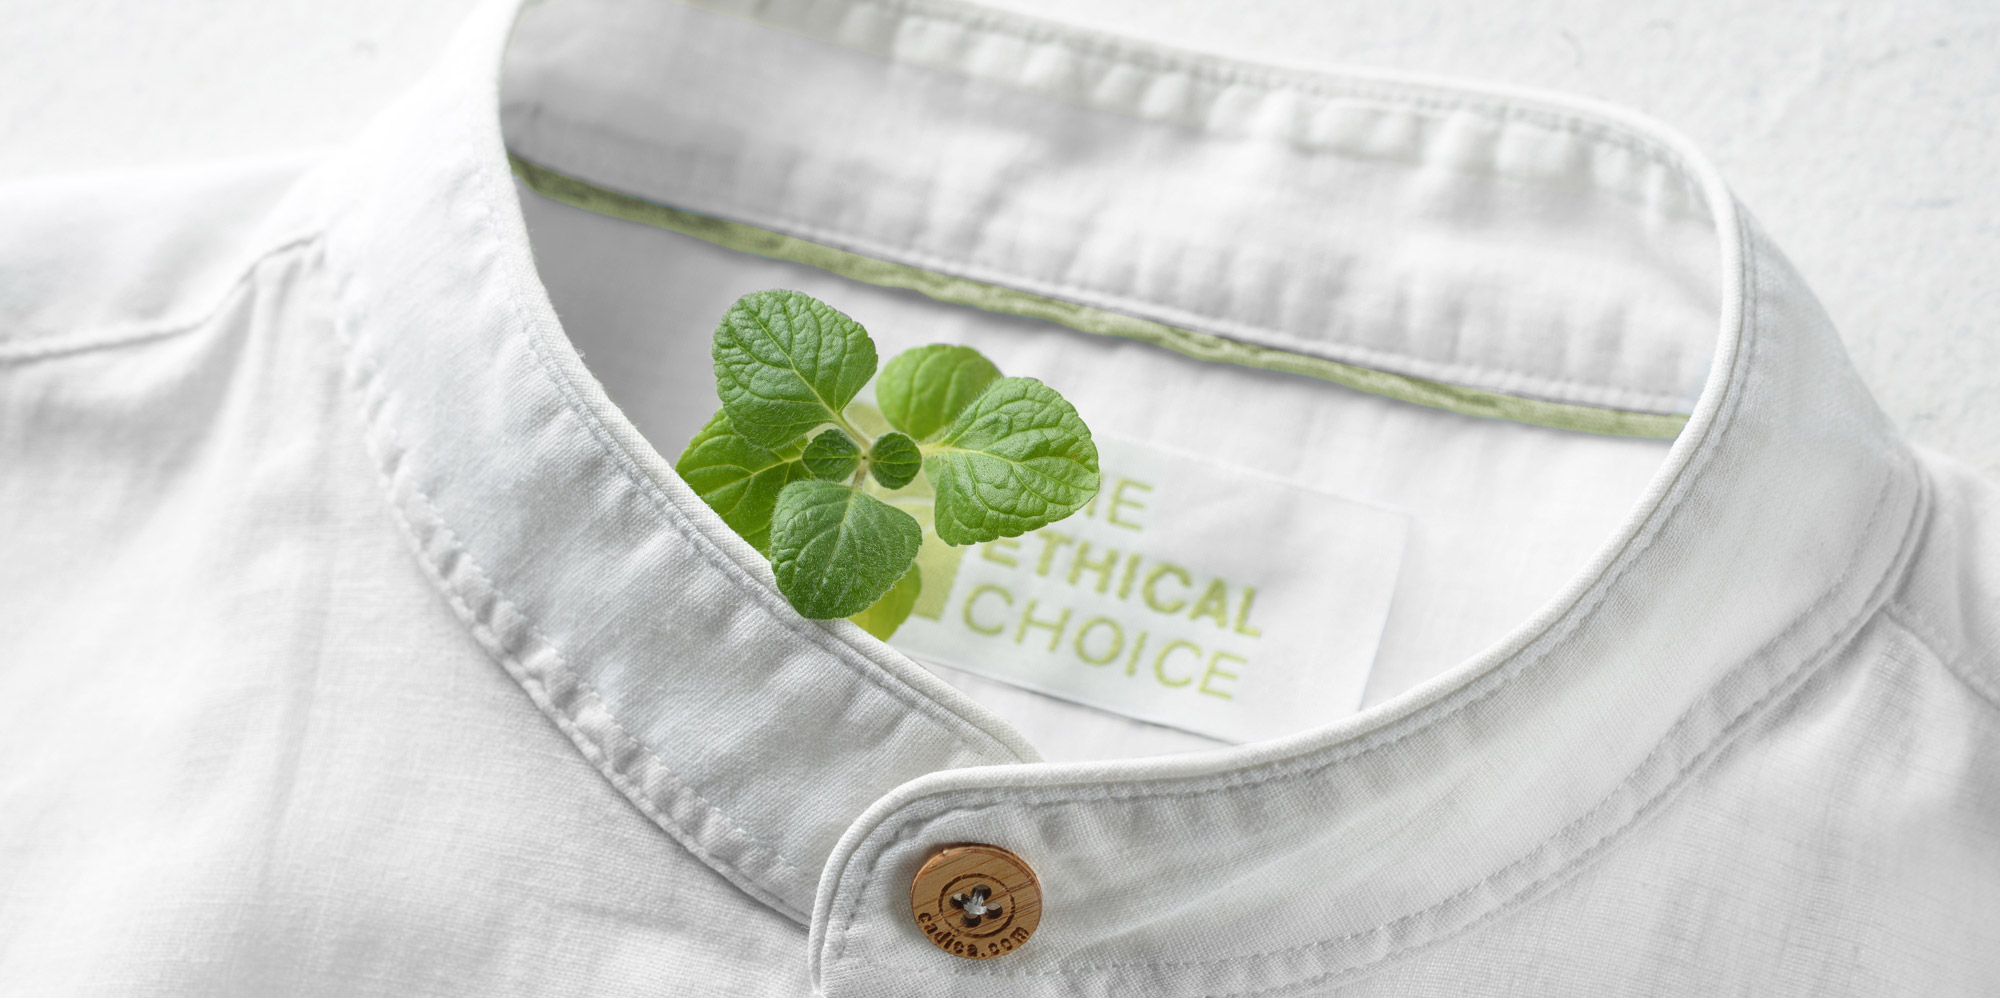 The Ethical Choice Collection